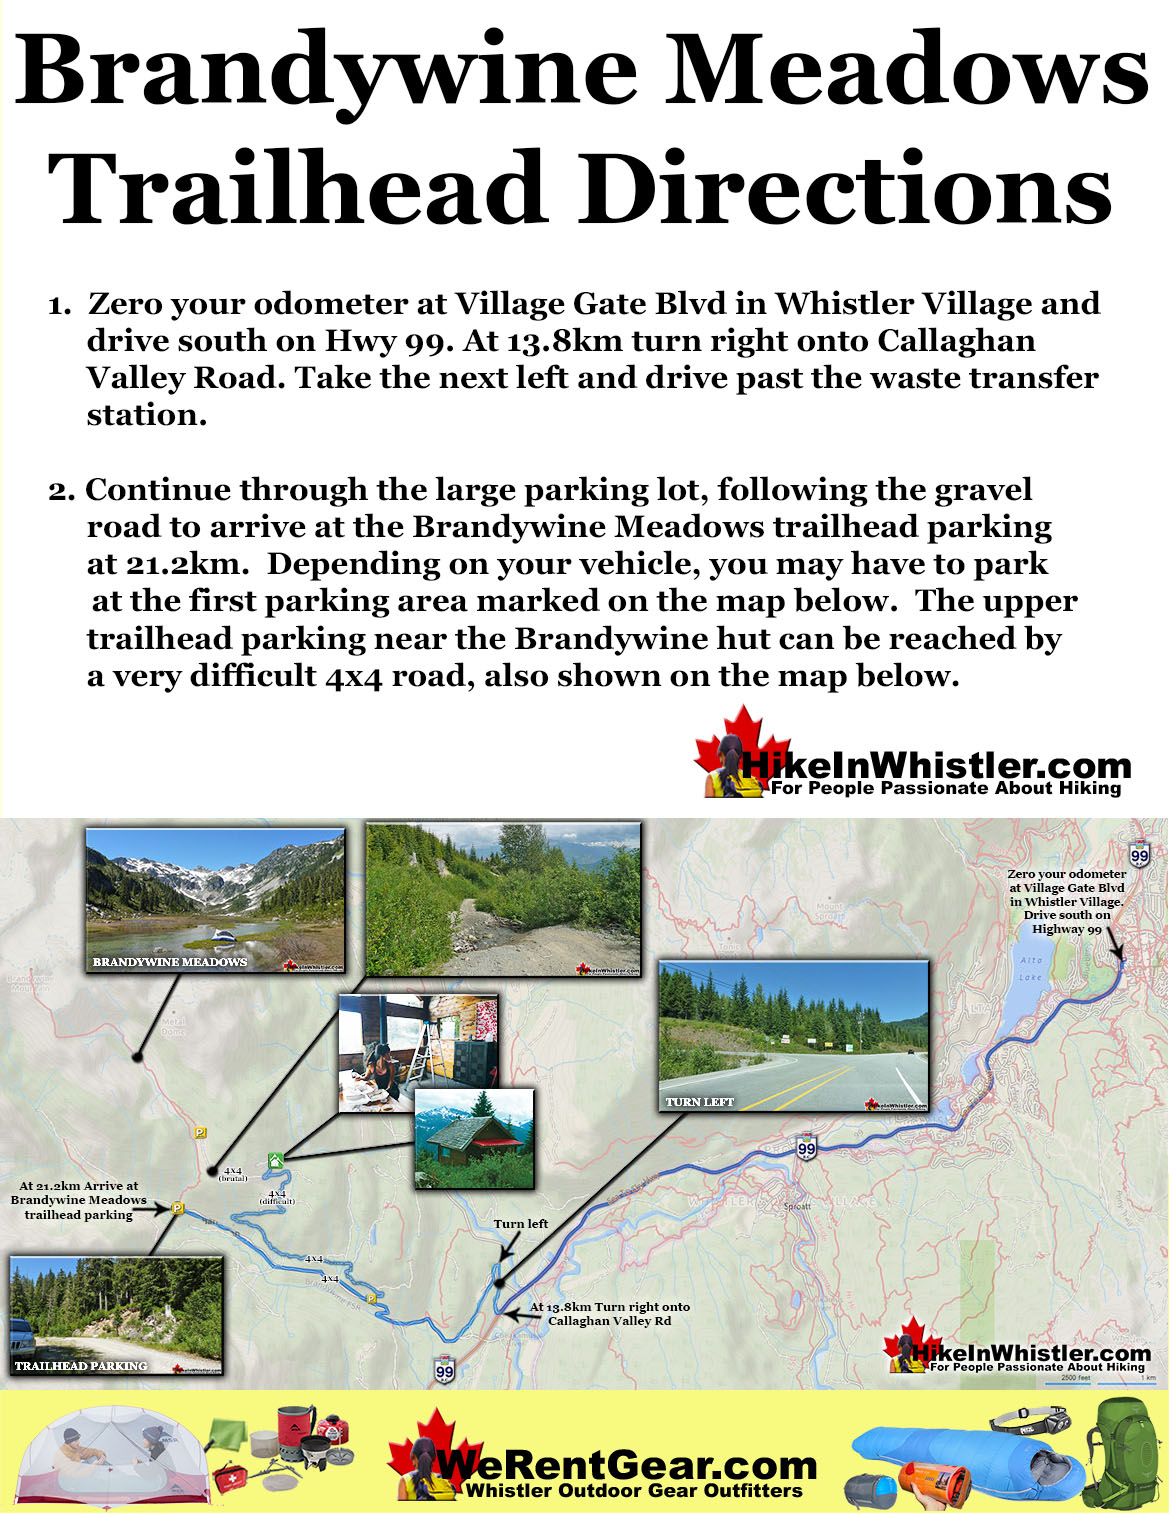 Brandywine Meadows Trailhead Directions Map